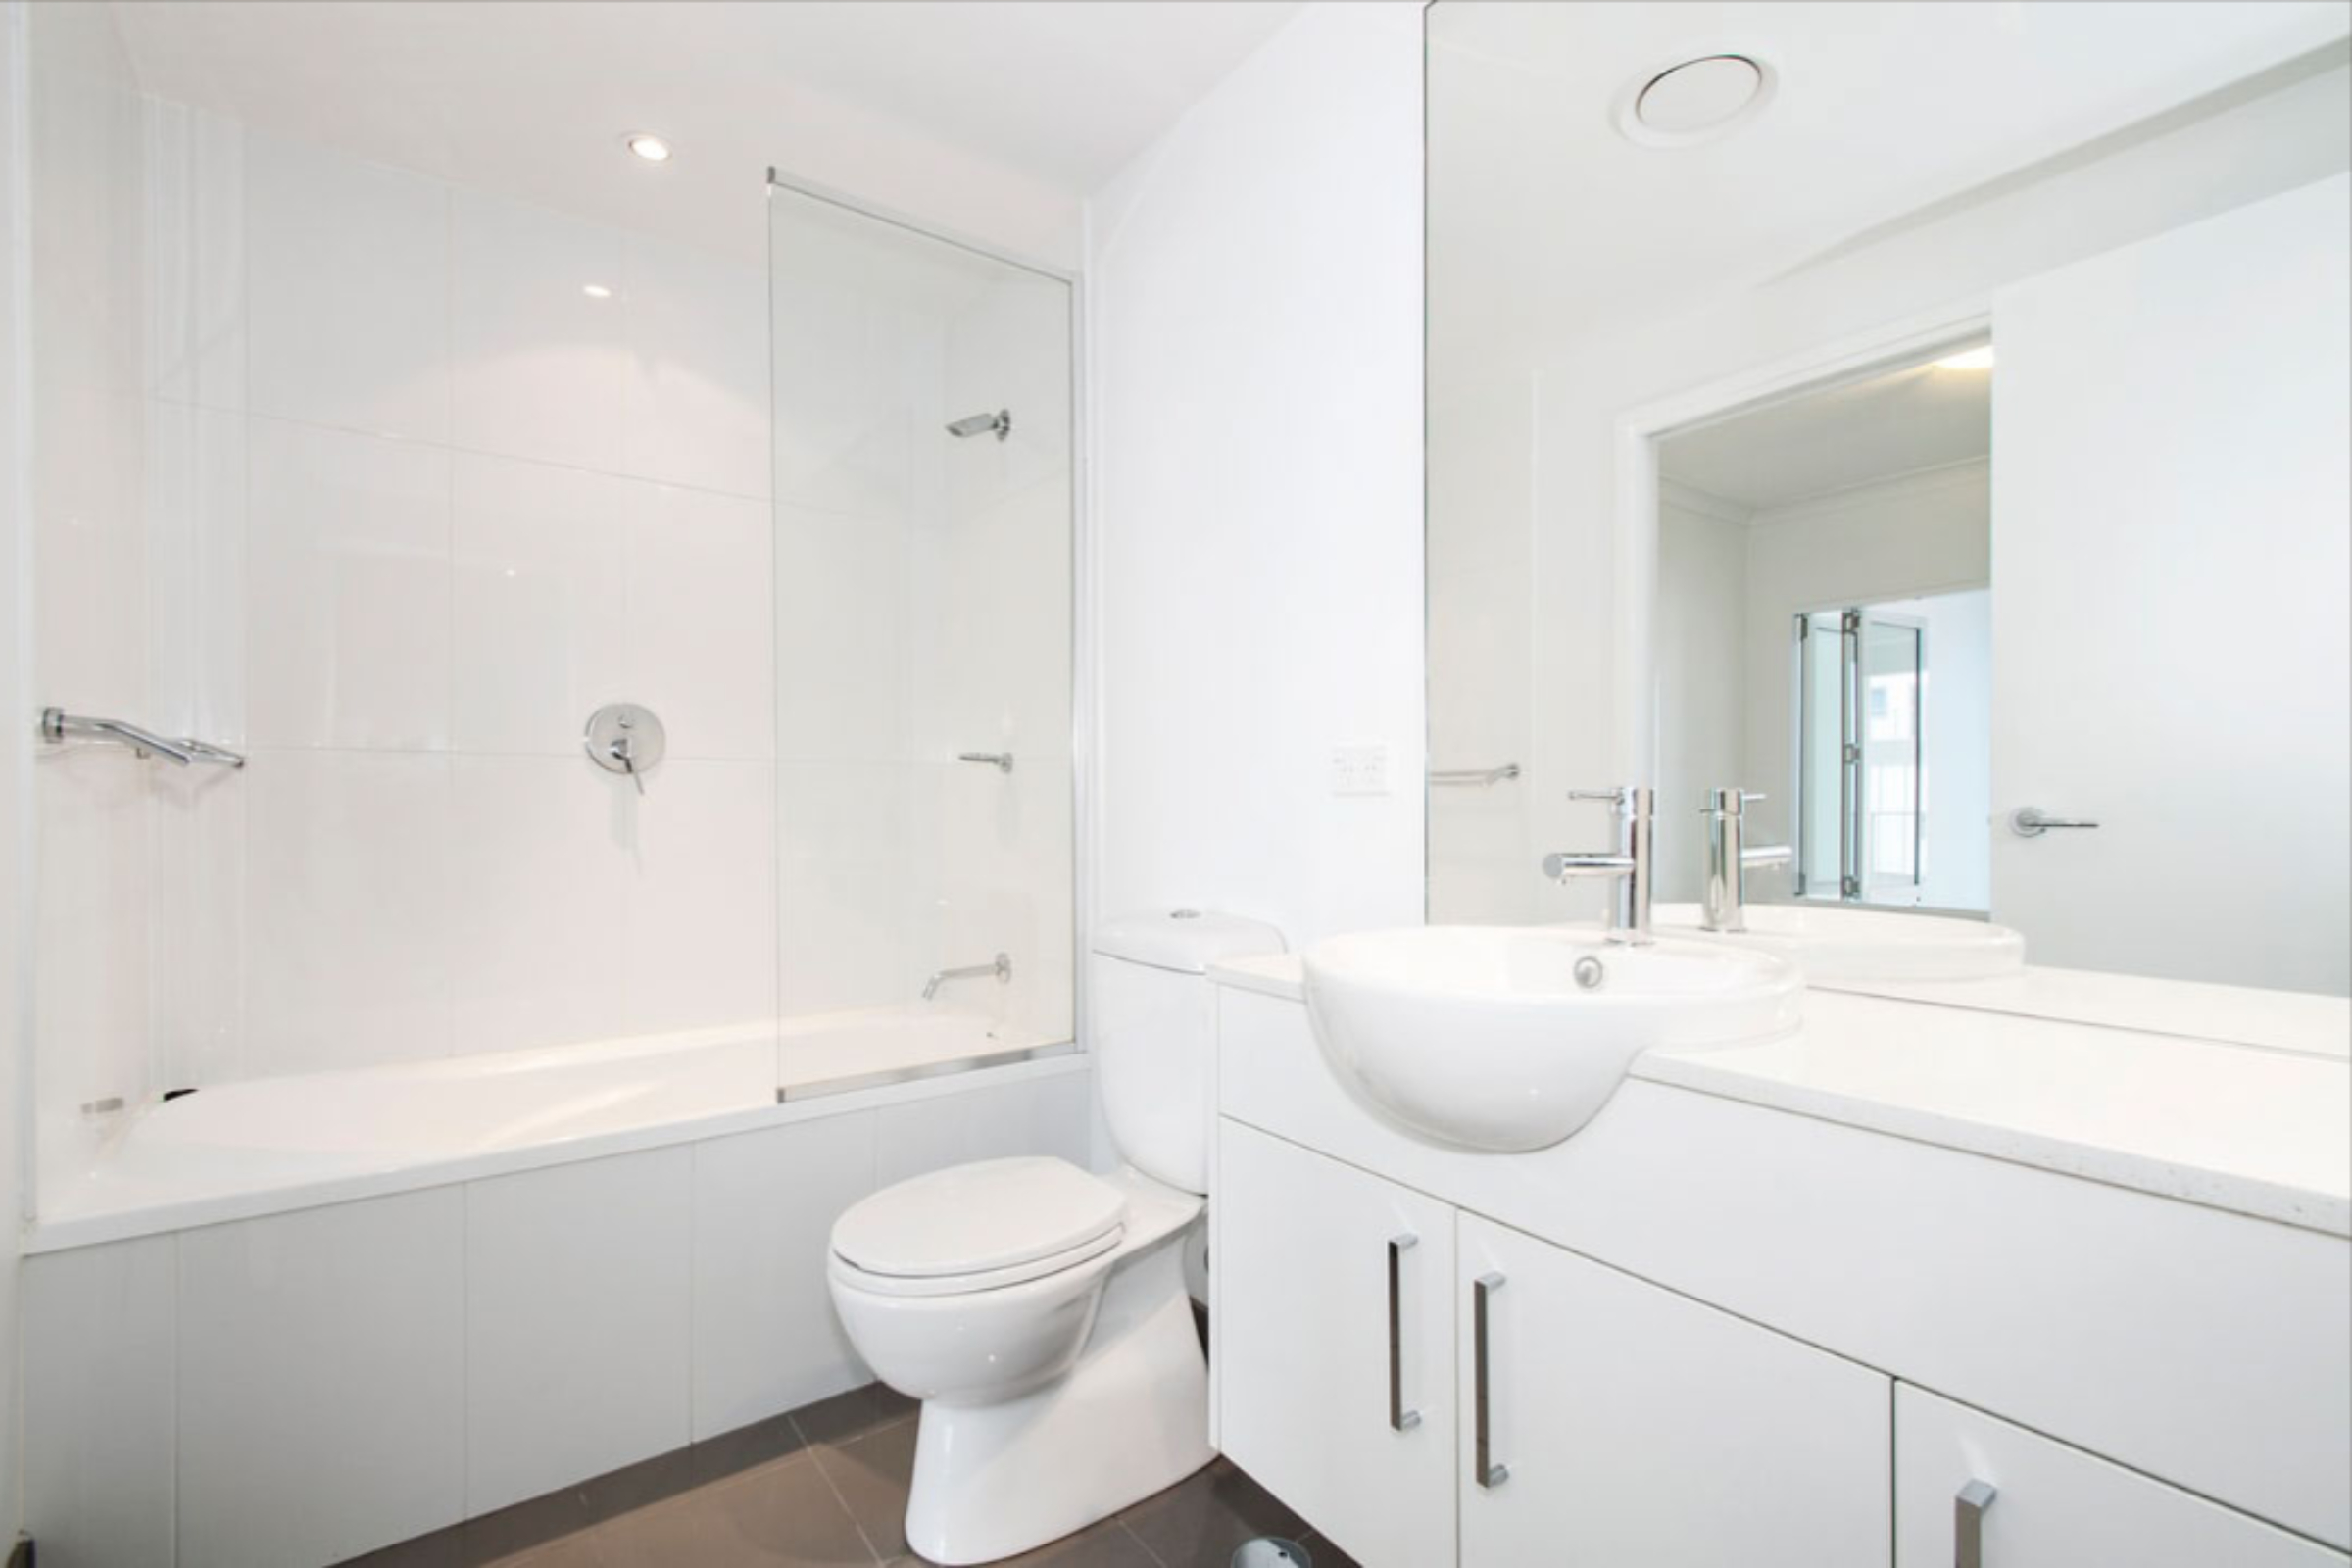 The Top 3 Bathroom Design Trends for 2019